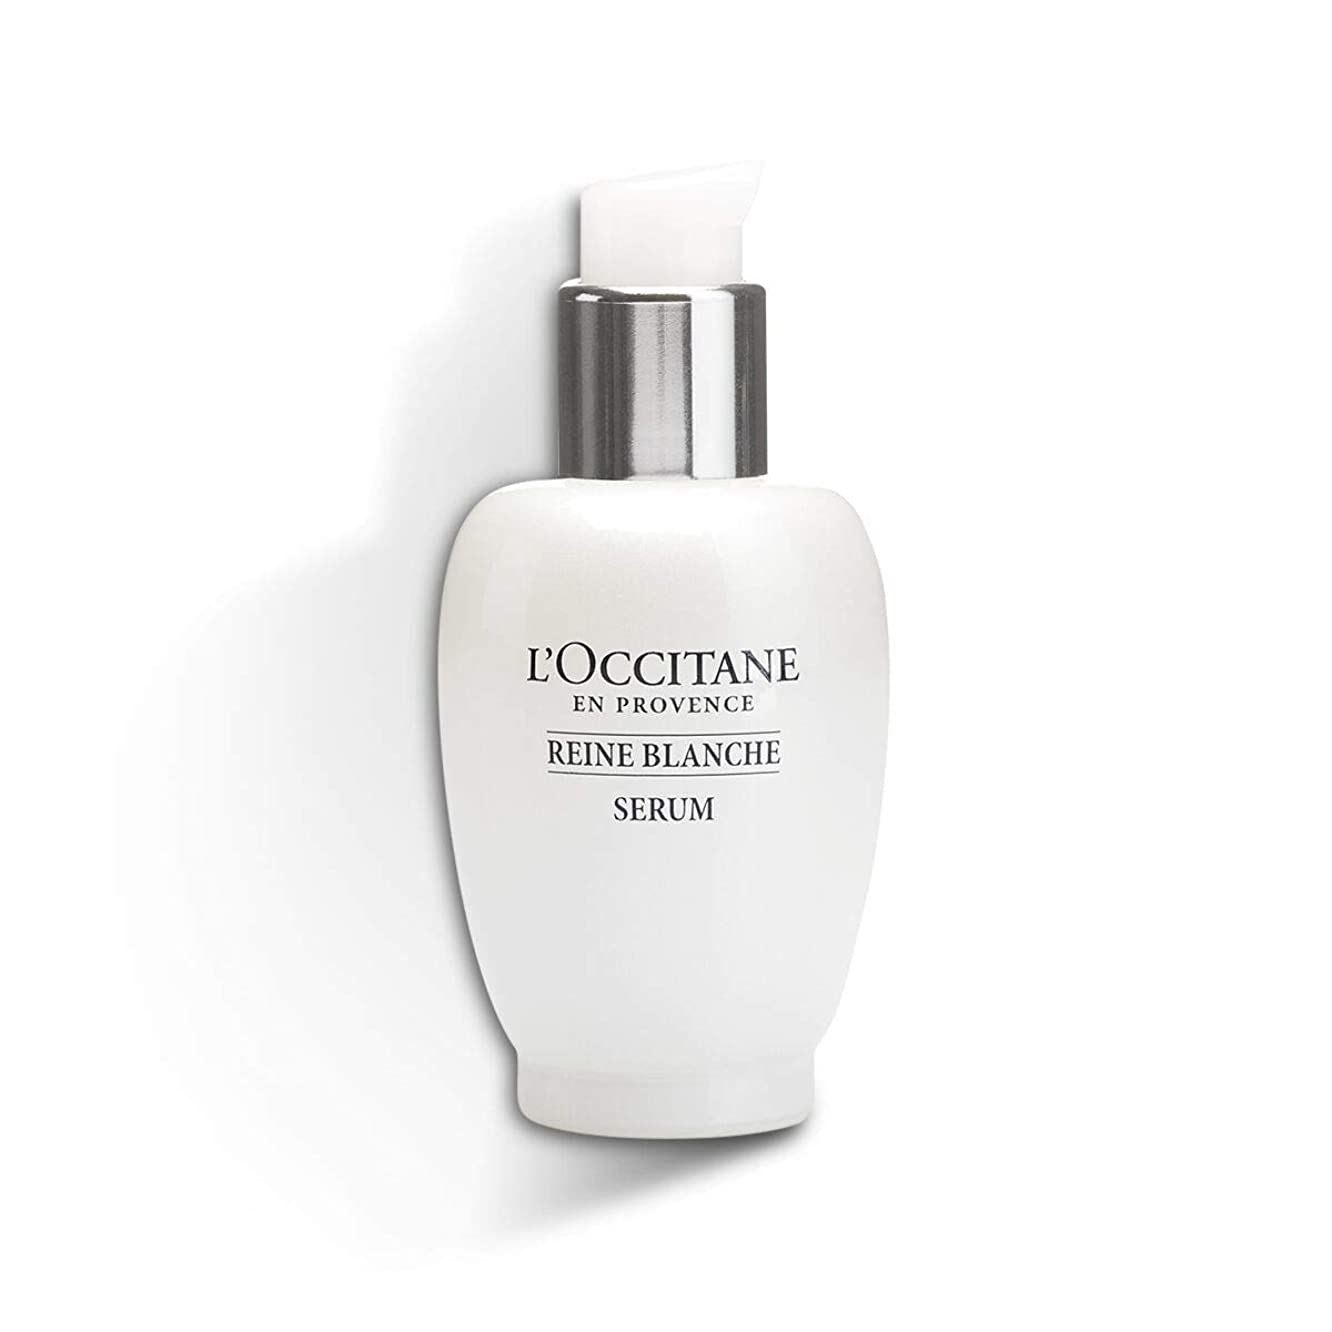 L'Occitane Reine Blanche Brightening Serum Enriched with Meadowsweet Flower Extract for a More Luminous Skin Tone, 1 fl. oz.